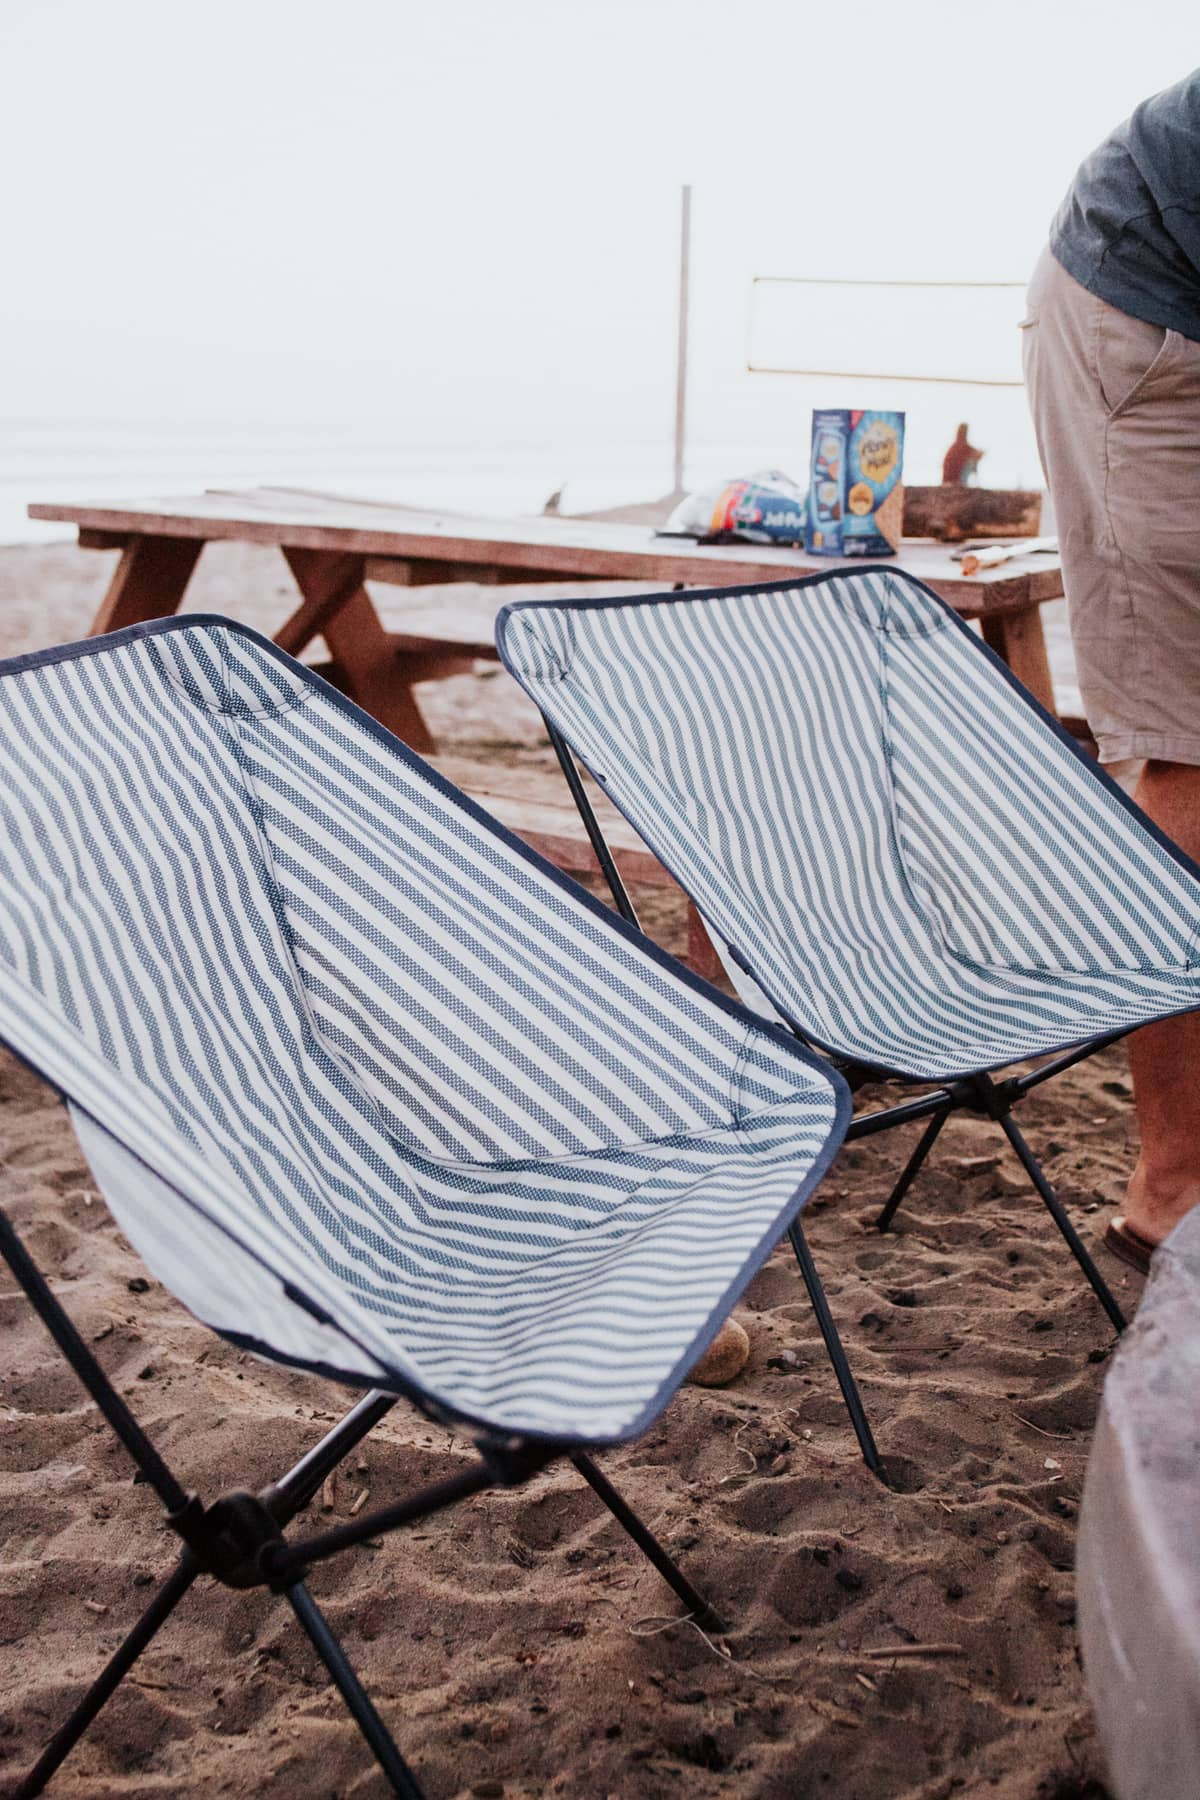 backcountry travel chairs